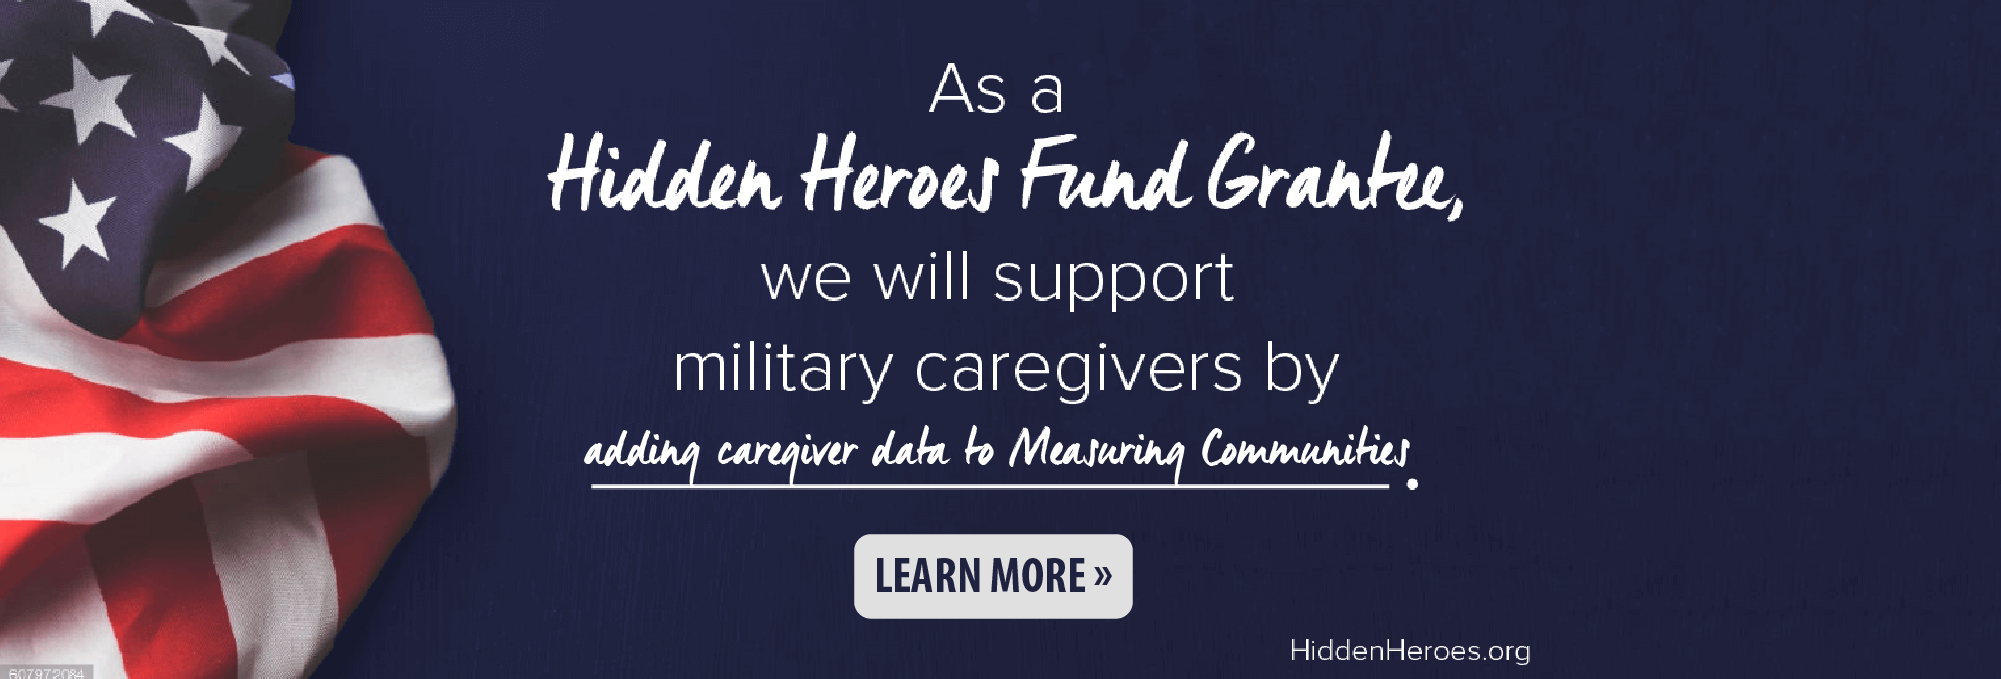 As a Hidden Heroes Fund Grant we will support military caregivers by adding caregiver data to Measuring Communities.